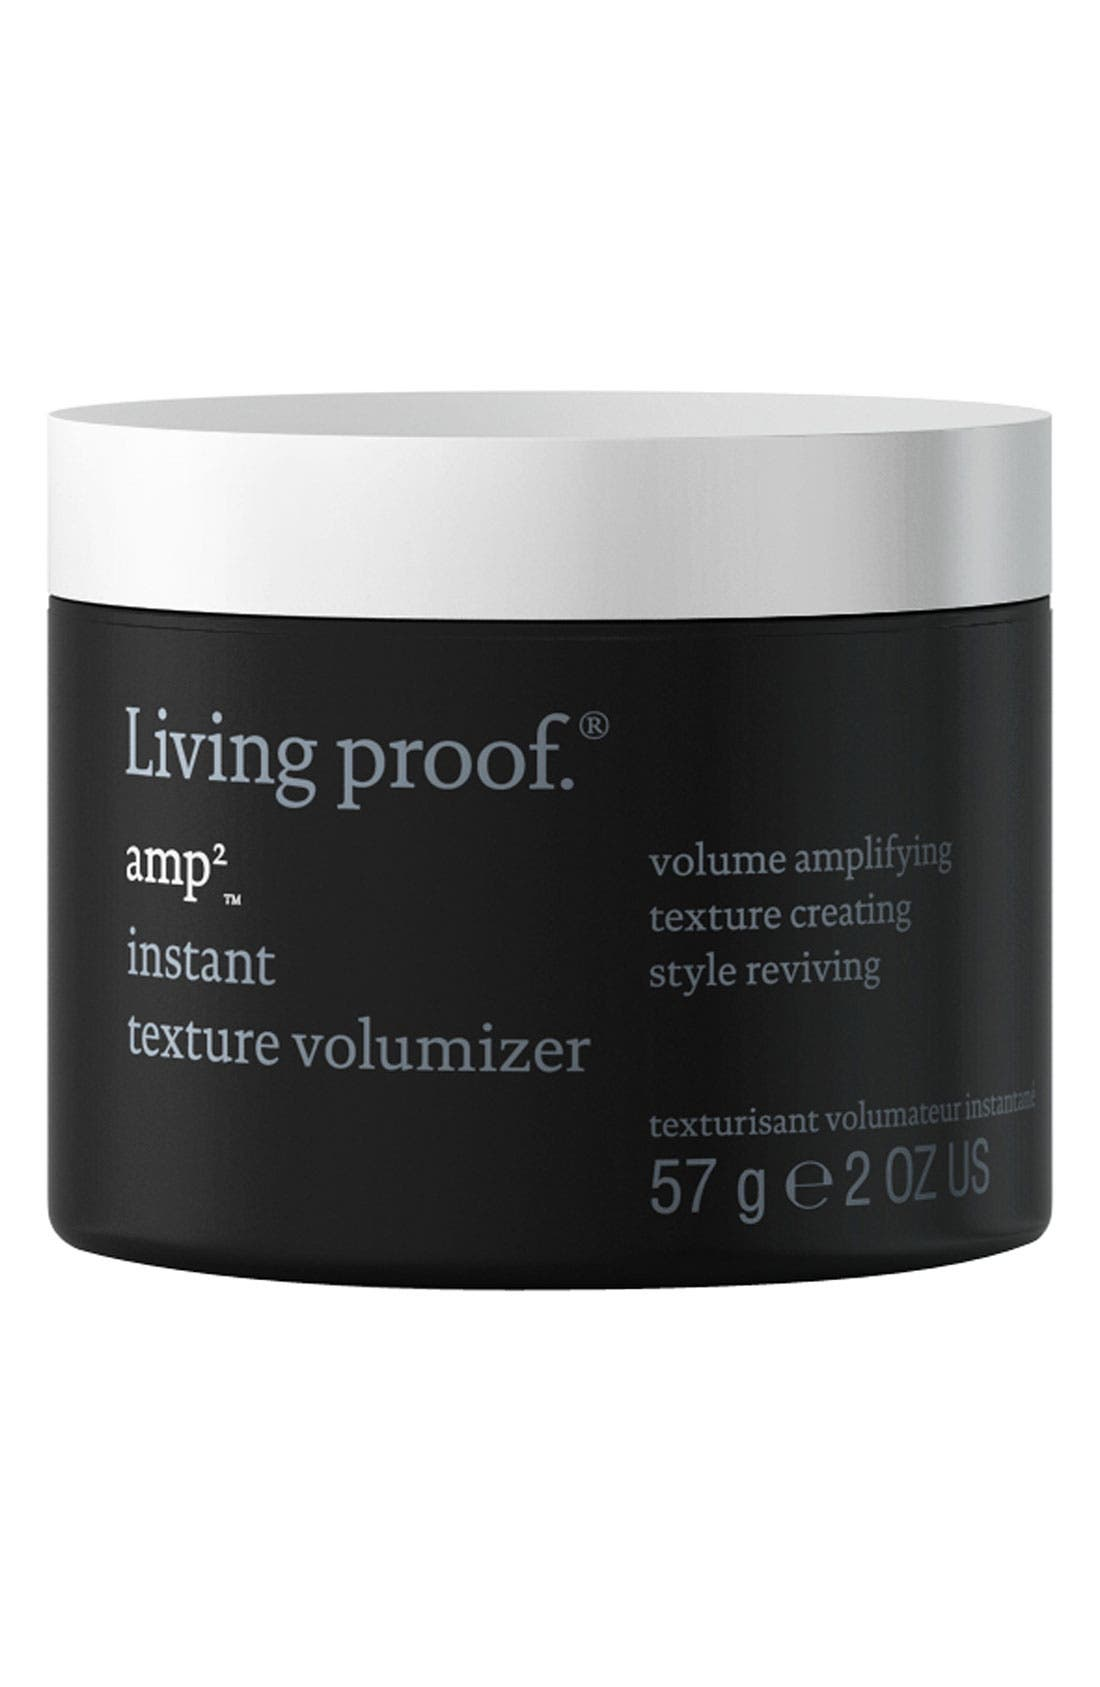 Living proof® amp² Instant Texture Volumizer